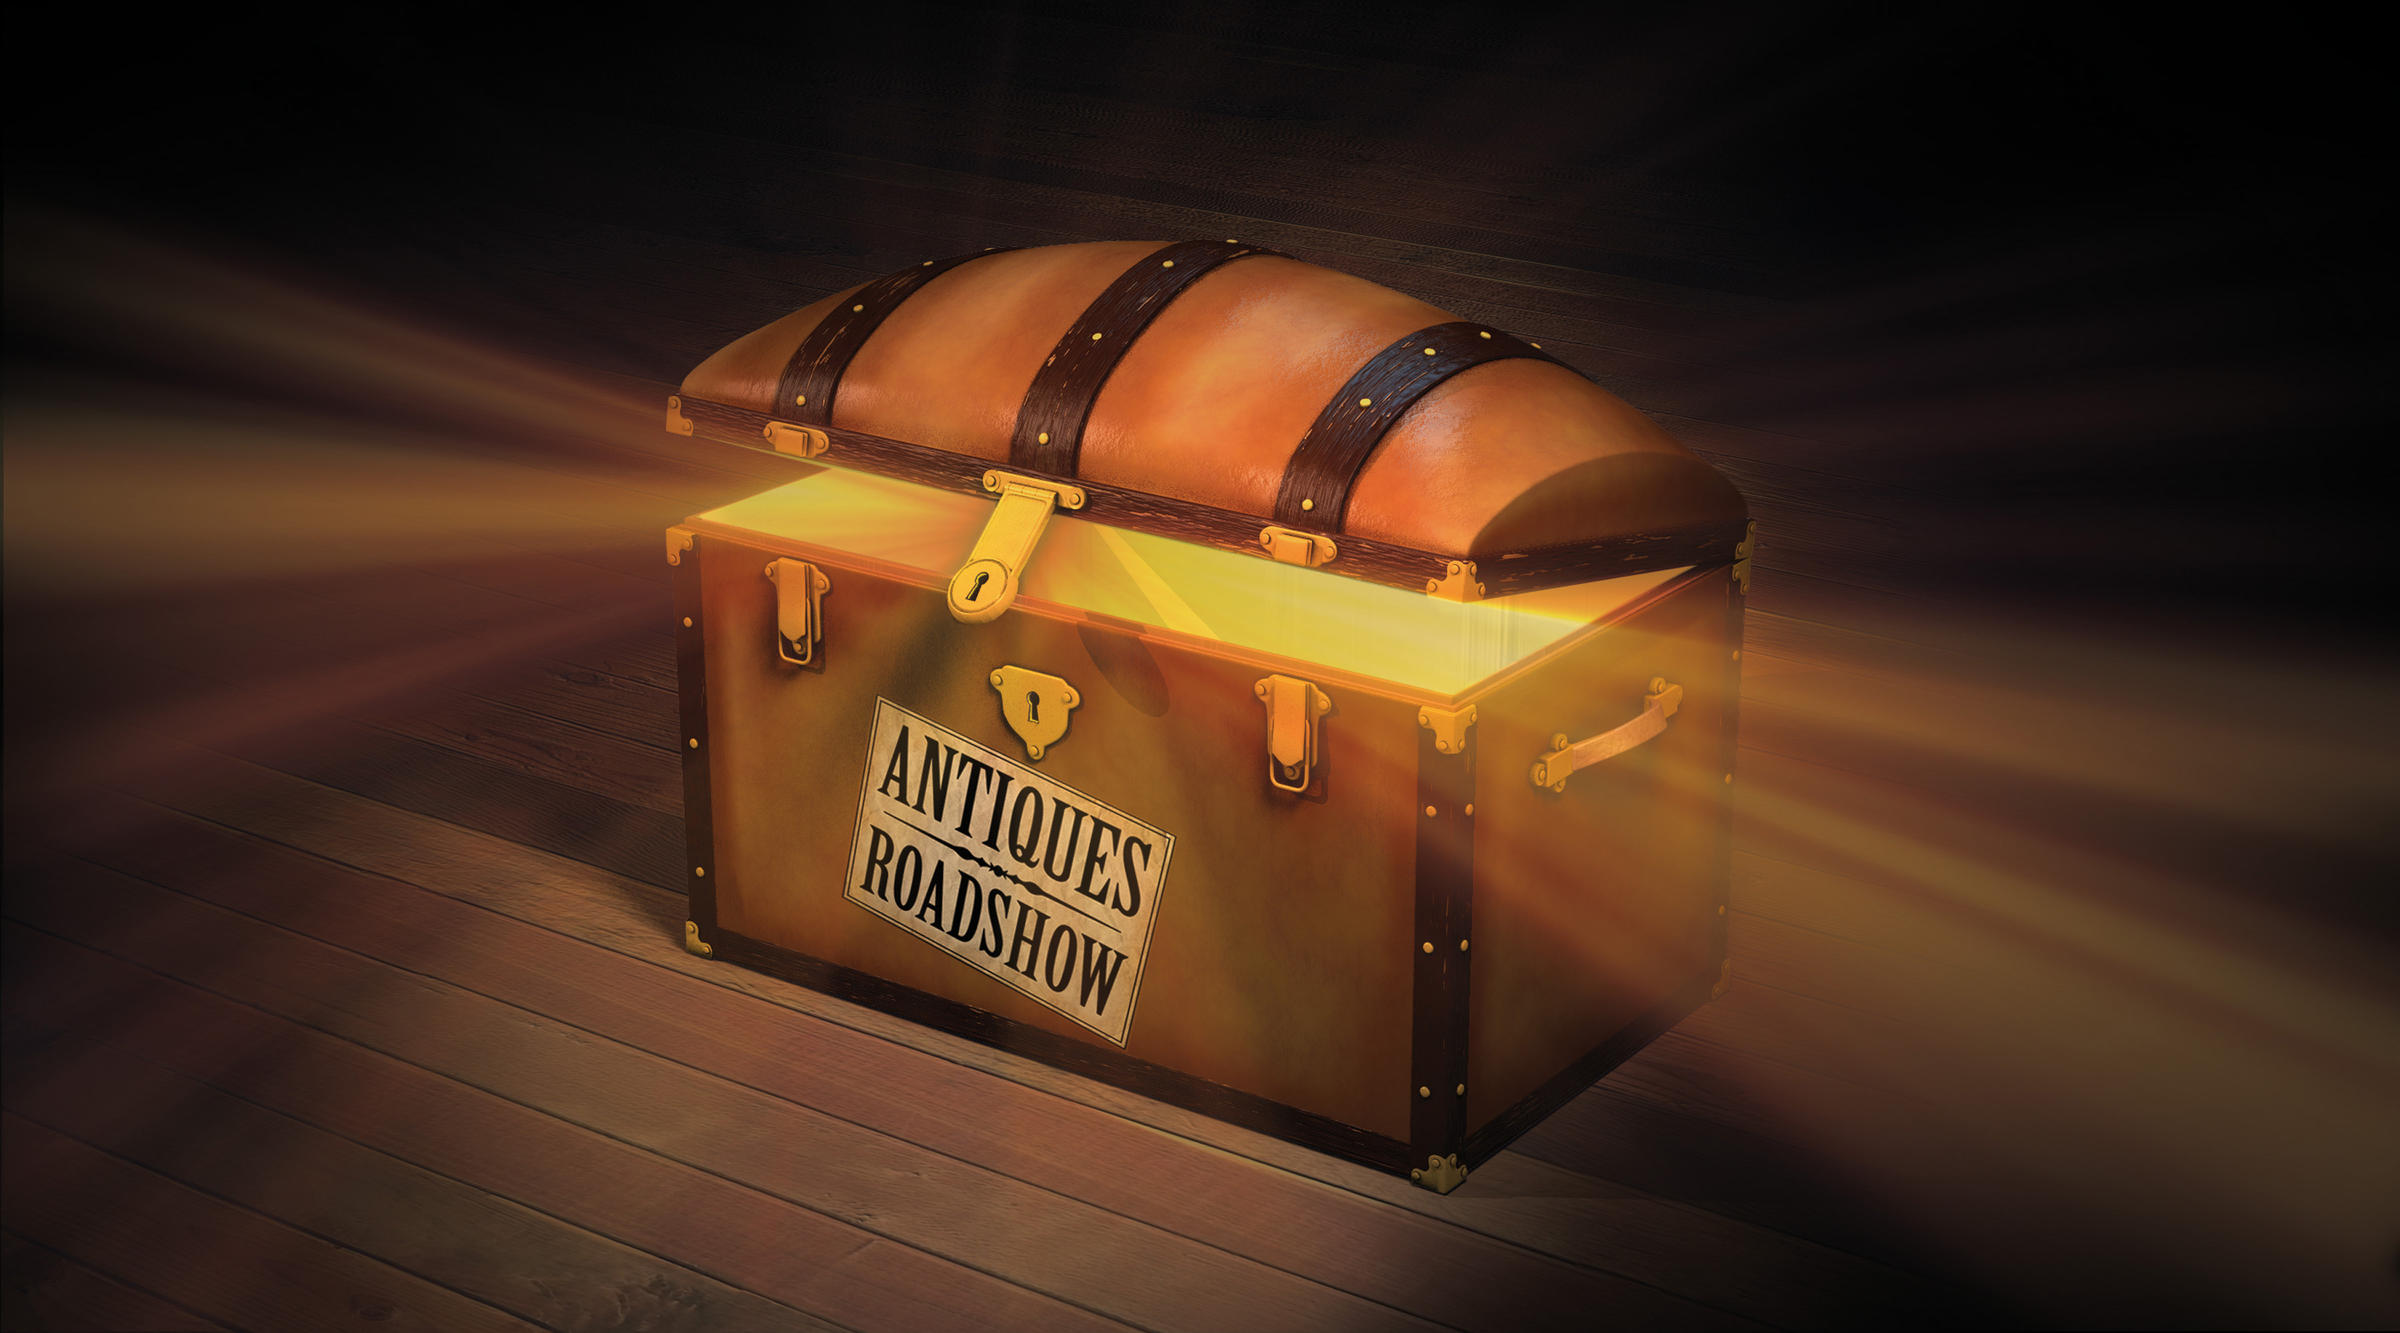 Antiques roadshow treasures from charleston west - Vintage antiques roadshow ...